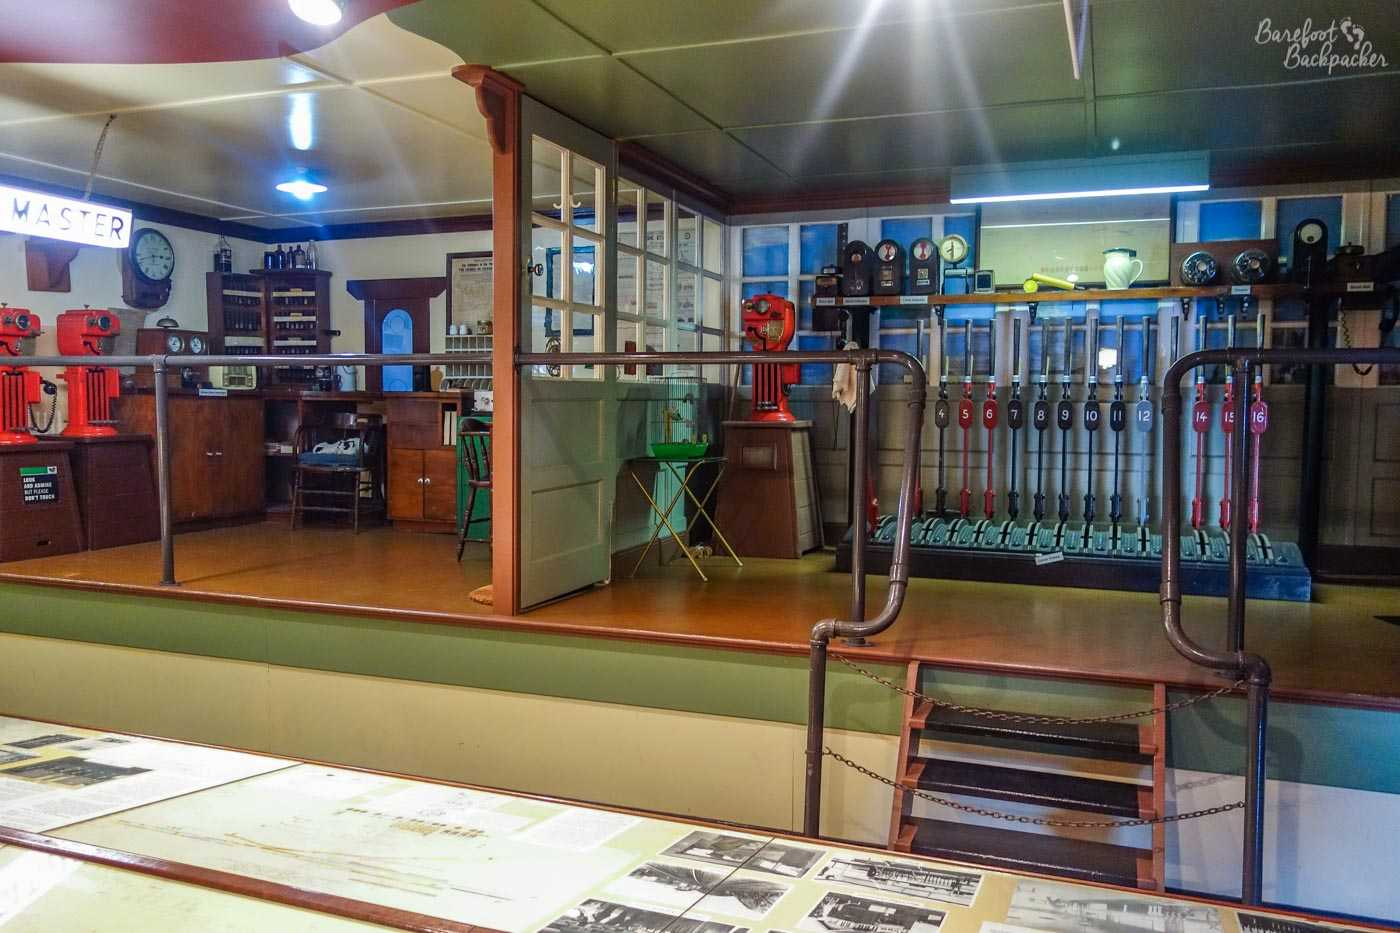 Replica signal box and stationmaster office, in the railway museum. On the left hand side is the stationmaster's office, with weighing machines, post sorting boxes, a desk, a large clock, and what appear to be a suspiciously large number of glass bottles. On the right is the signal box, mostly made up of sixteen huge numbered leavers (we're talking maybe over a metre in height) that would have operated either the signals or the railway junction points. In the background are some weird devices noted as 'block indicators', 'track indicators', and 'timers', but look for all the world like barometers – boxes with arrows in them. I have no idea. I'm not a signalman. There is also, even more oddly, a bird-cage, complete with bird(s). Whether bird cages were a traditional feature of signal boxes in Australia, or whether that was the only place the museum could find to put it, I couldn't say.